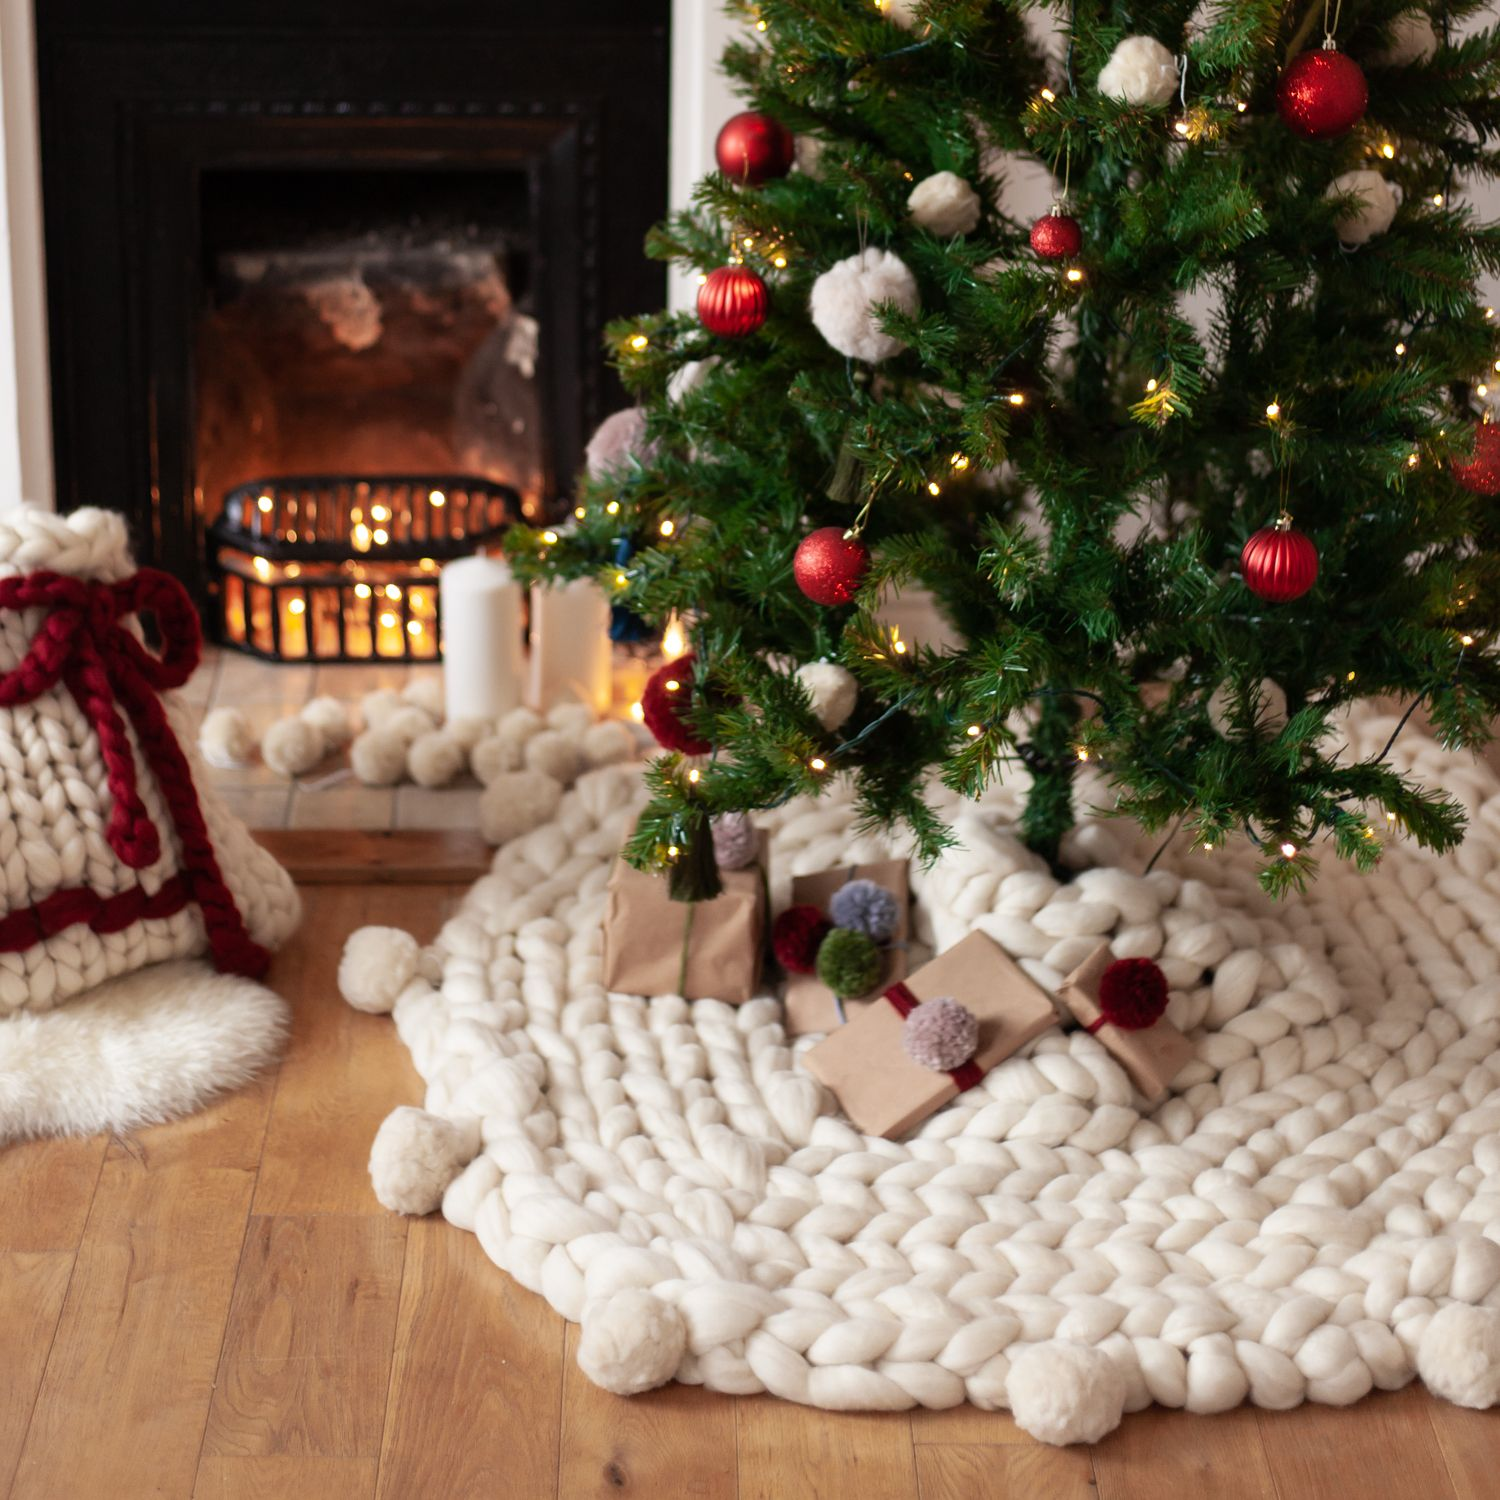 Giant Knit Christmas Tree Skirt Lauren Aston Designs Knitted Christmas Decorations Christmas Decorations Tree Christmas Knitting